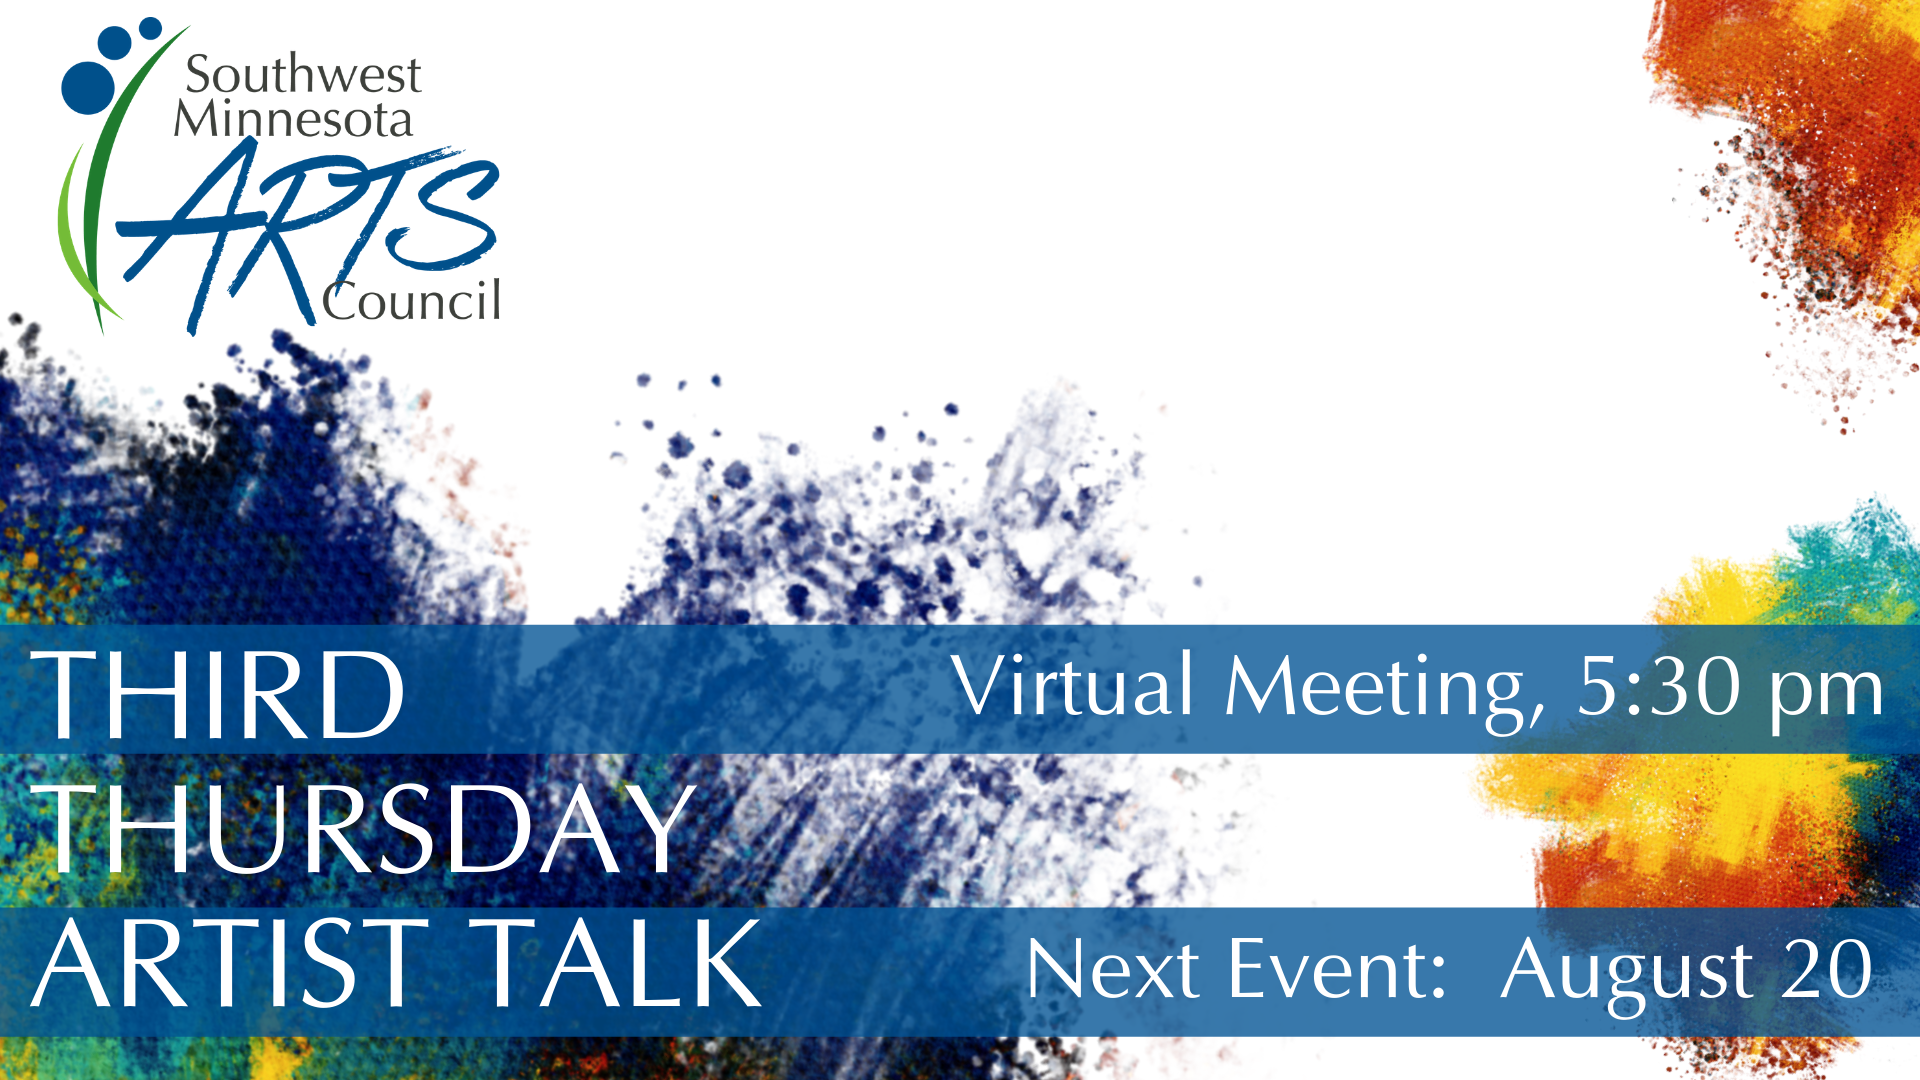 White background, SMAC's Logo in upper left, paint splotches of dark blue, red, yellow. Text says THIRD THURSDAY ARTIST TALK. Virtual meeting, 5:30 pm. Next Event: August 20.